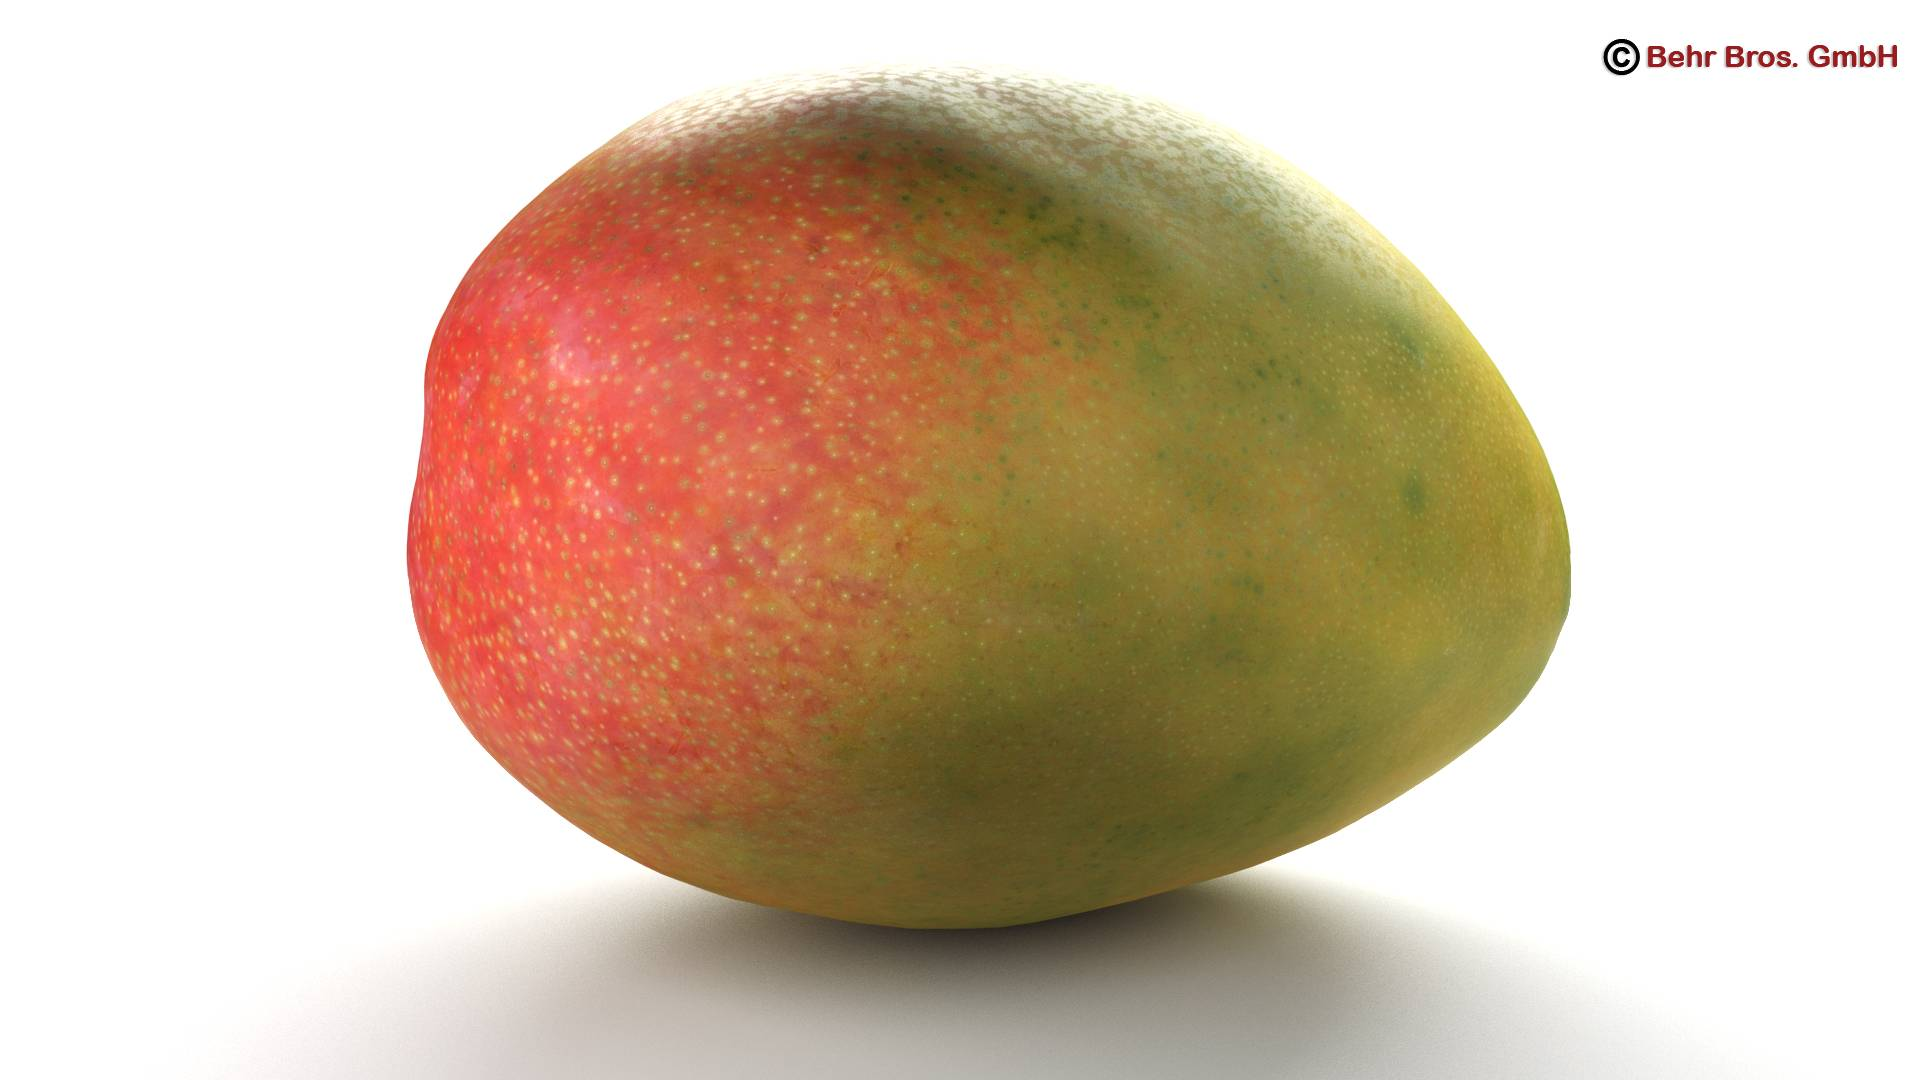 photo realistic mangos 3d model 3ds max fbx c4d lwo ma mb obj 217599